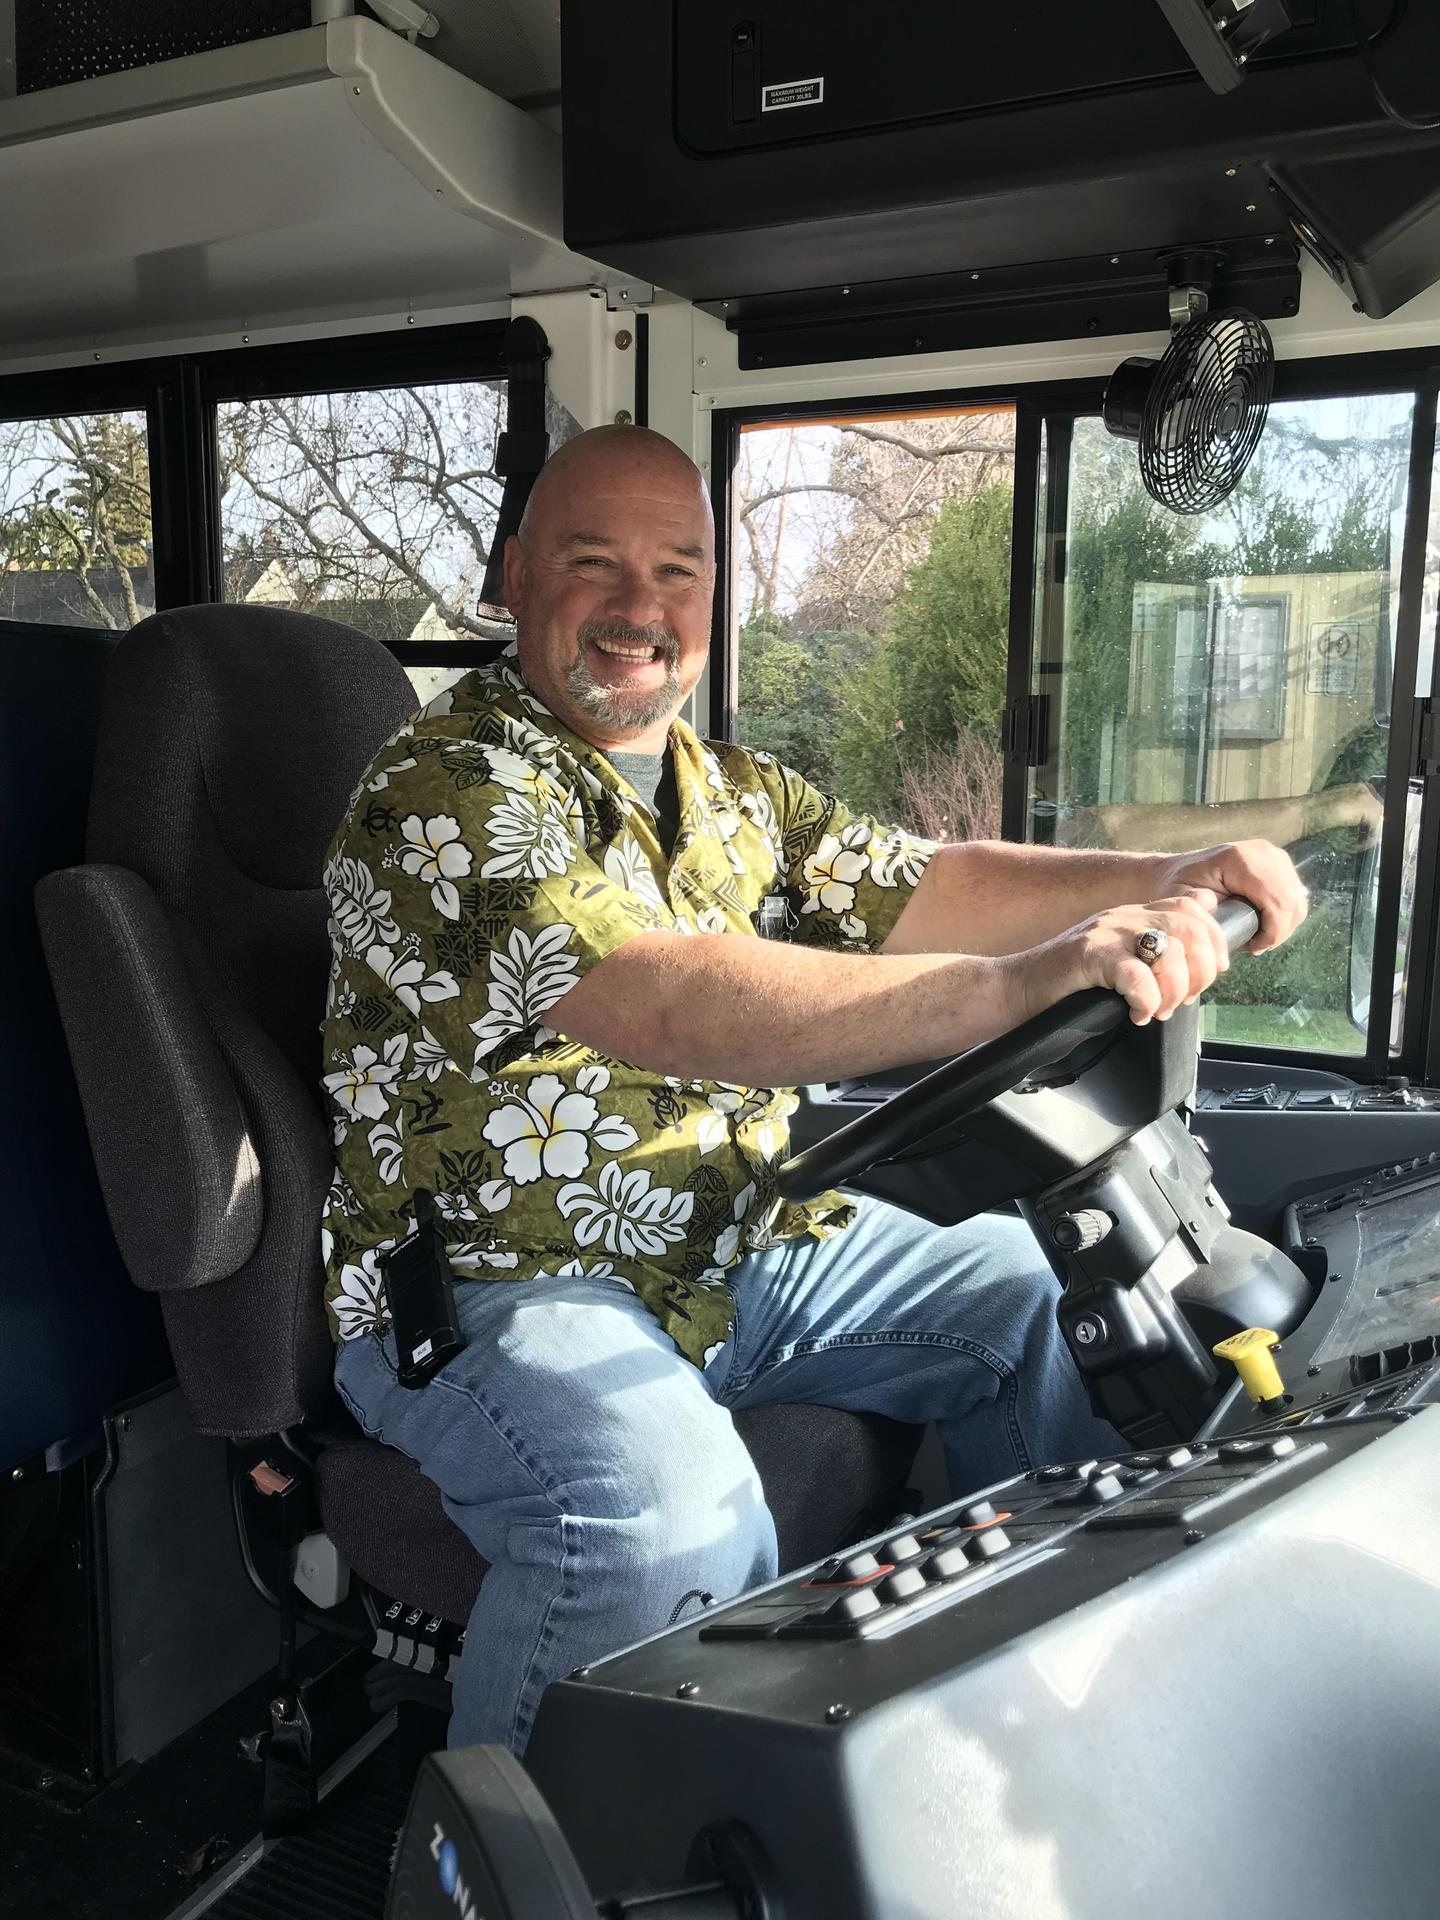 Mr. Tom the bus driver